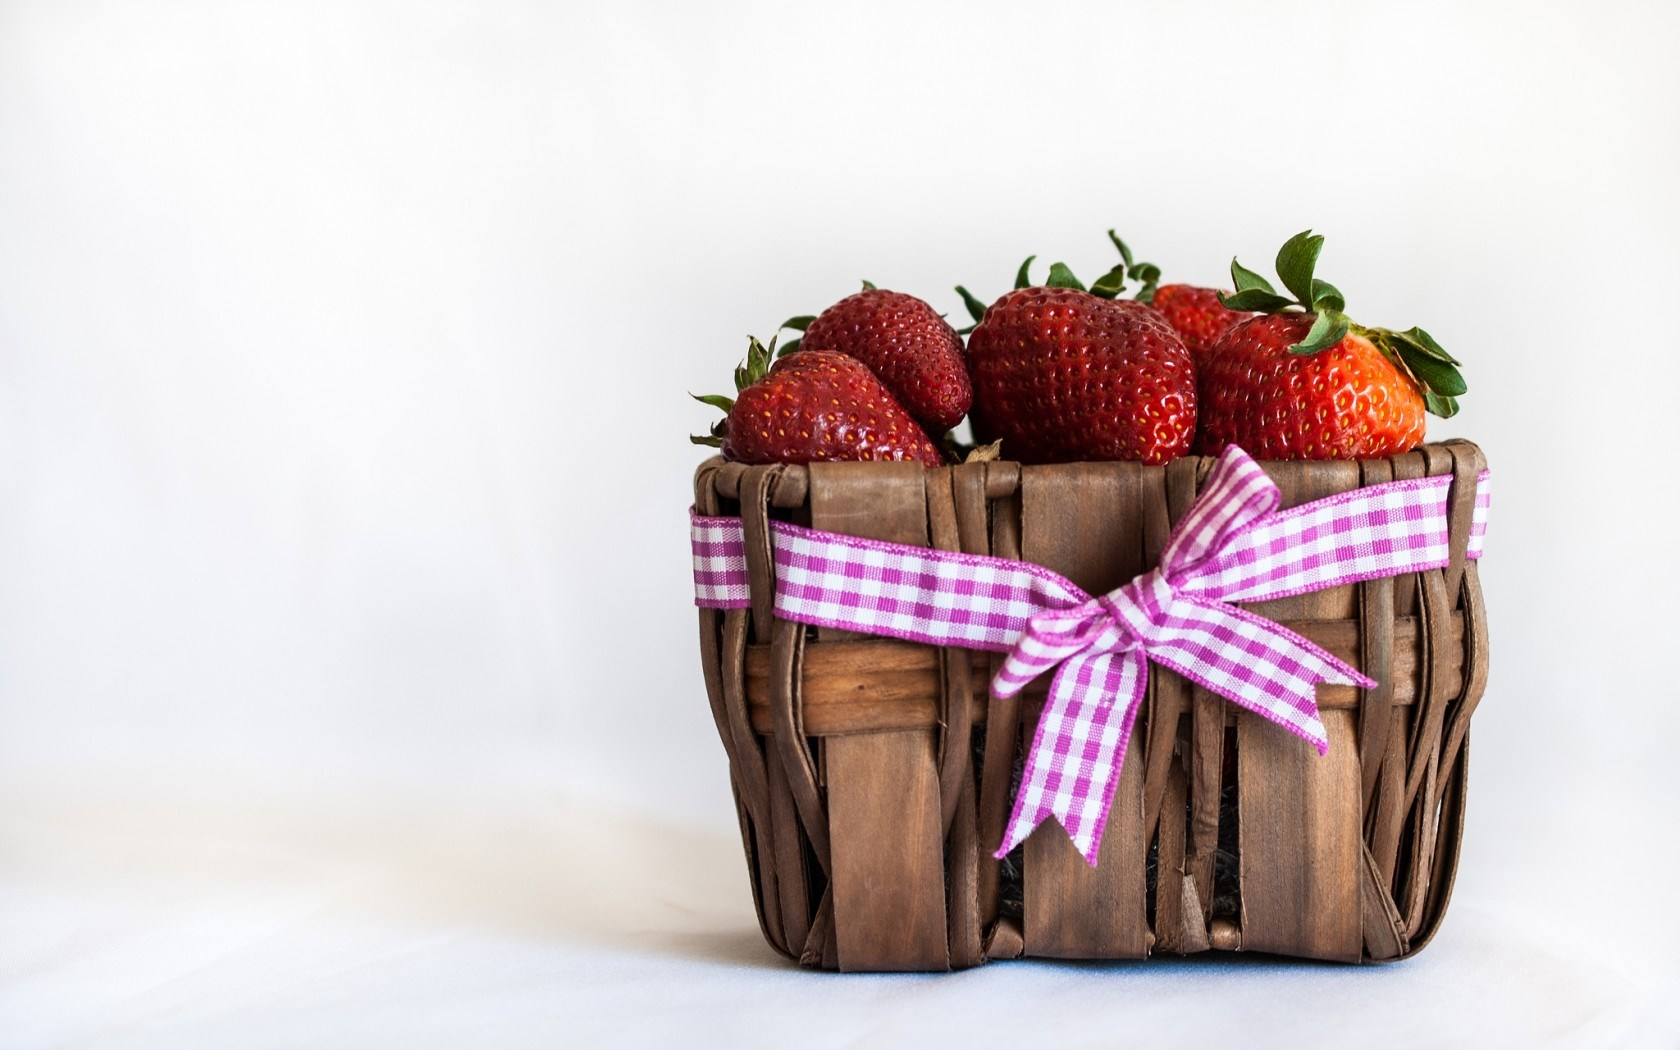 Basket Ribbon Berries Strawberries